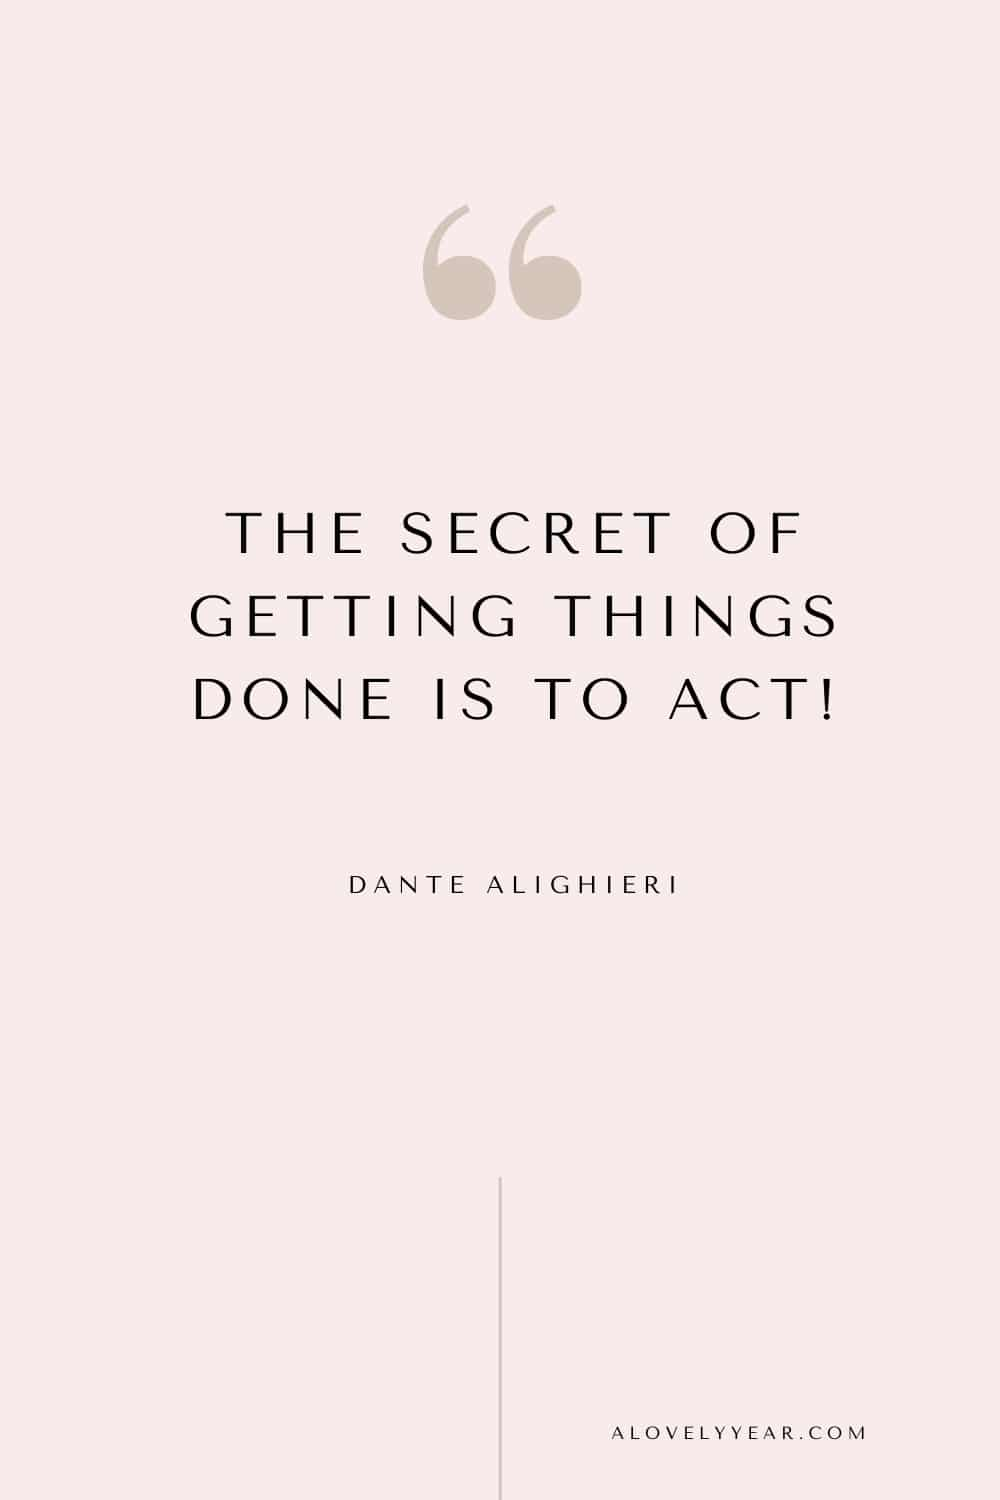 quote - The secret of getting things done is to act! — Dante Alighieri